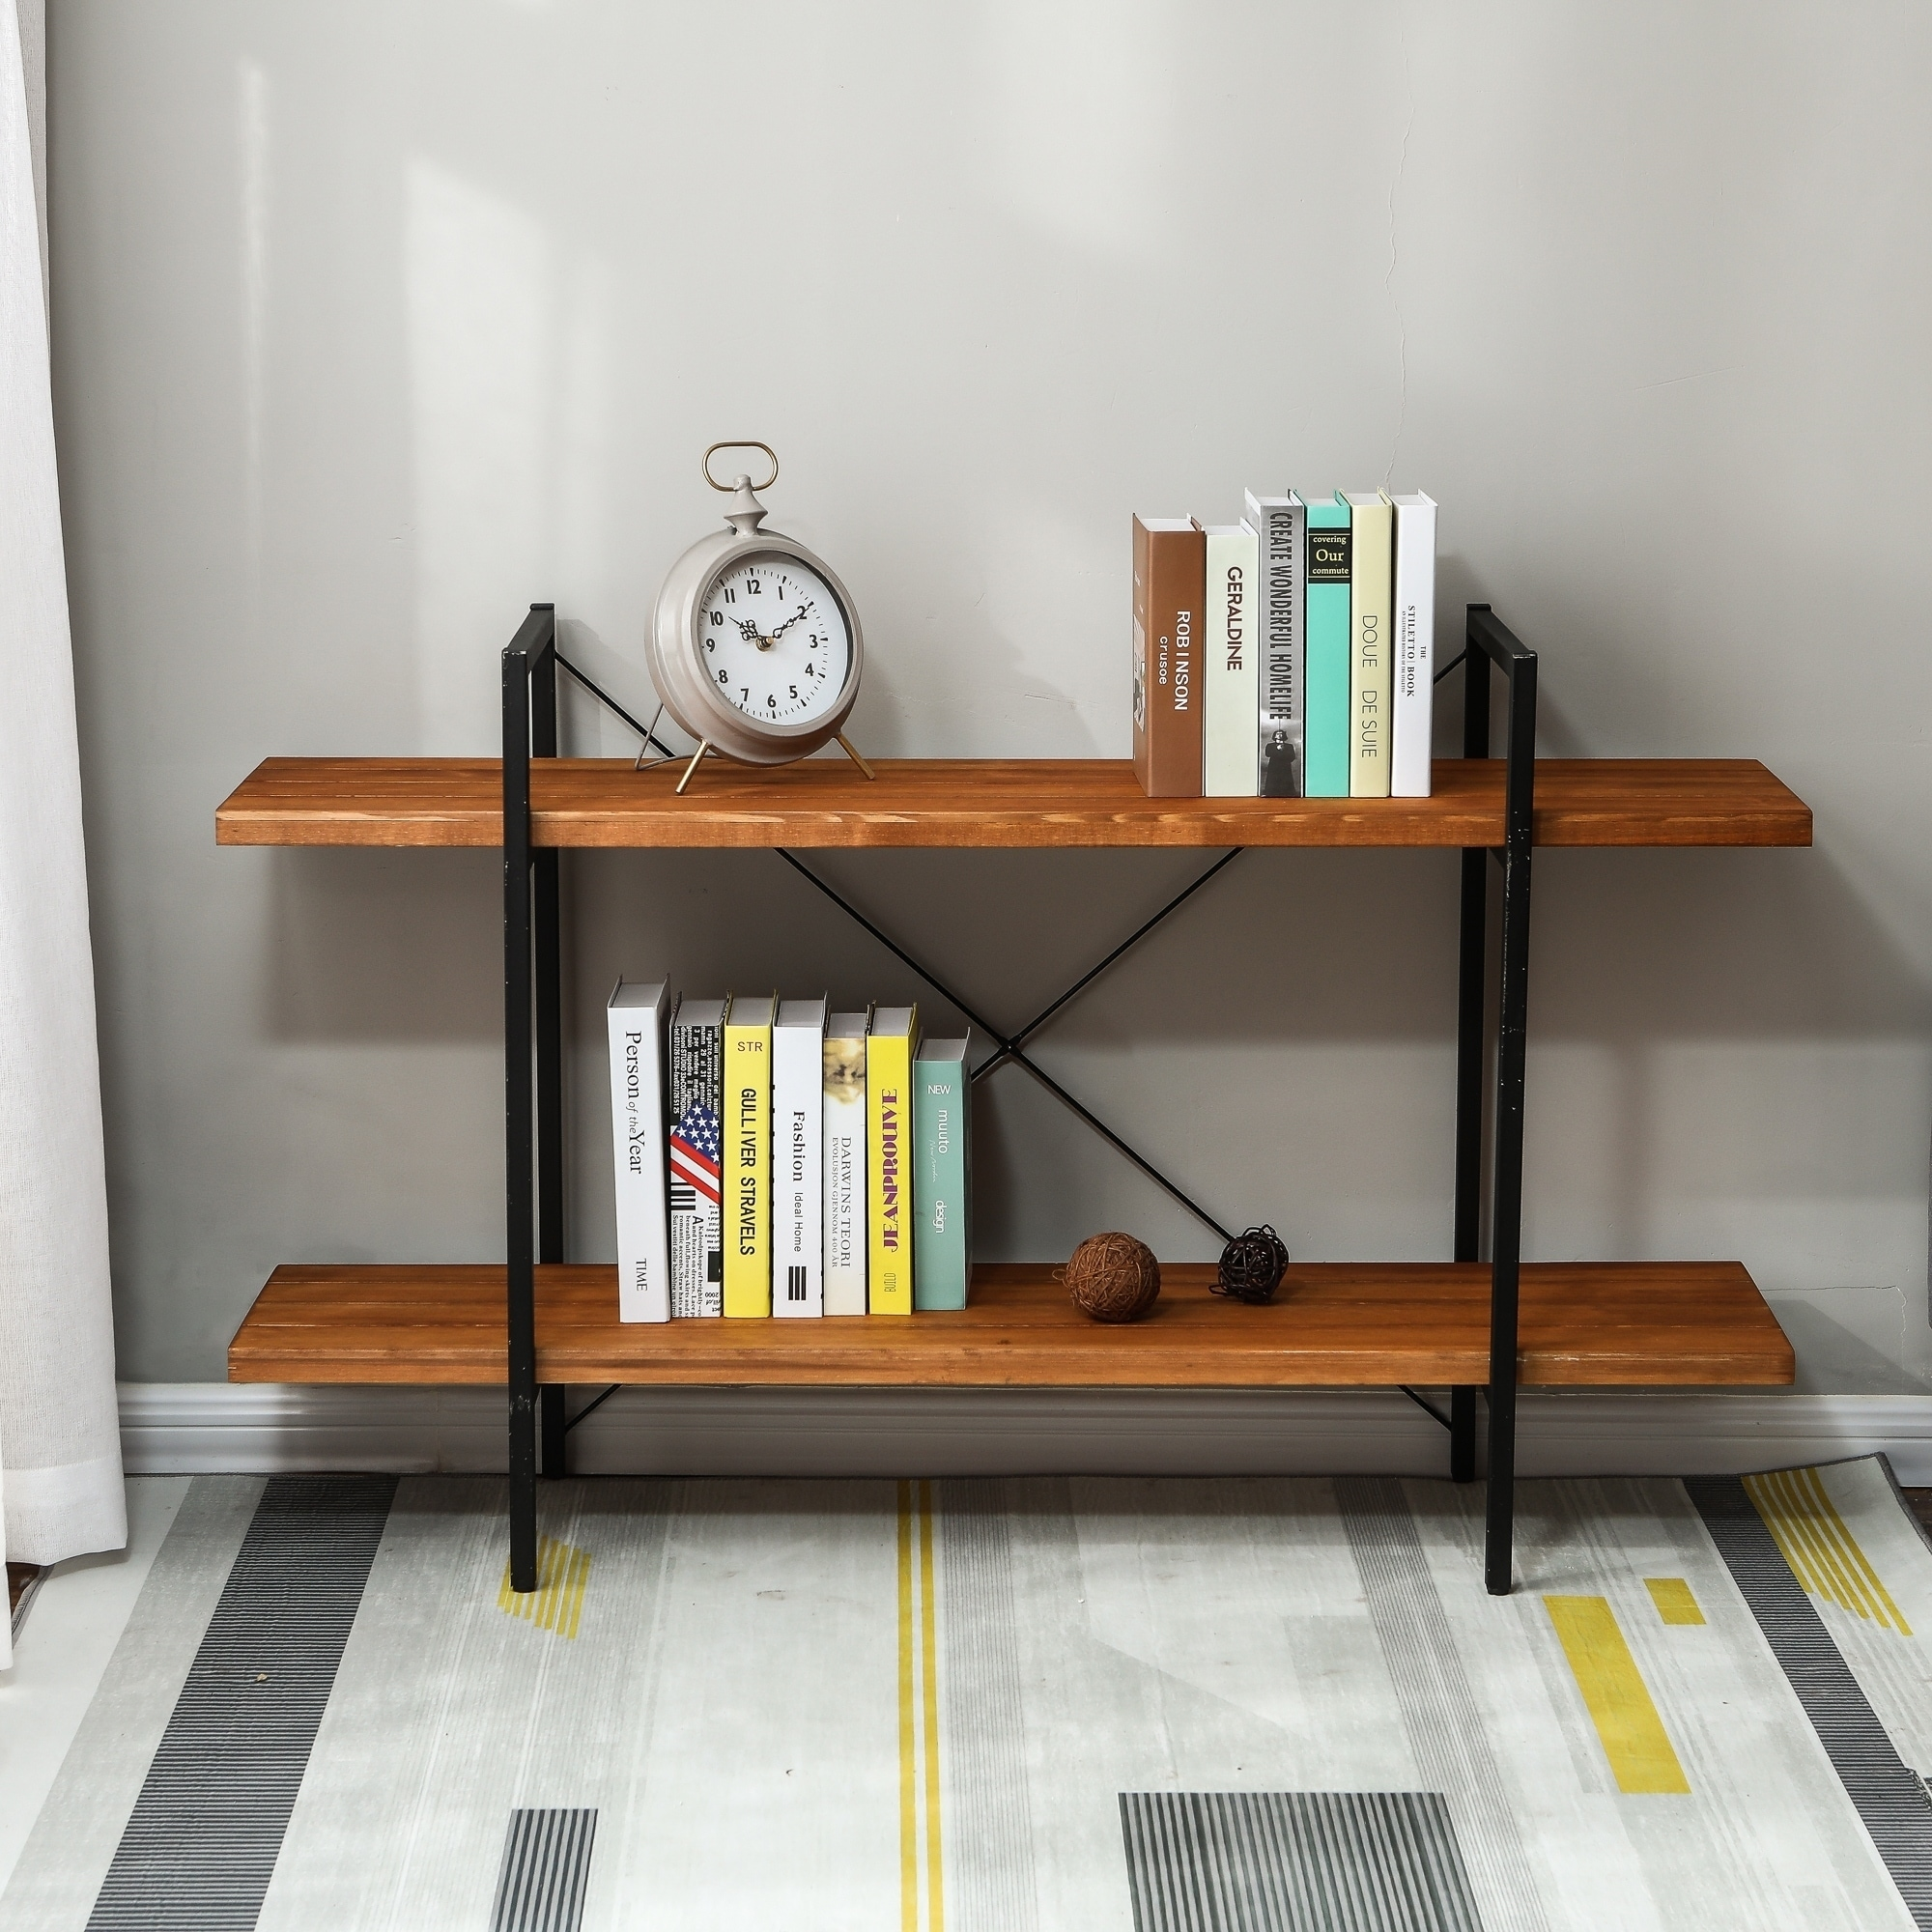 31in H 2 Tier Wood Etagere Bookcase